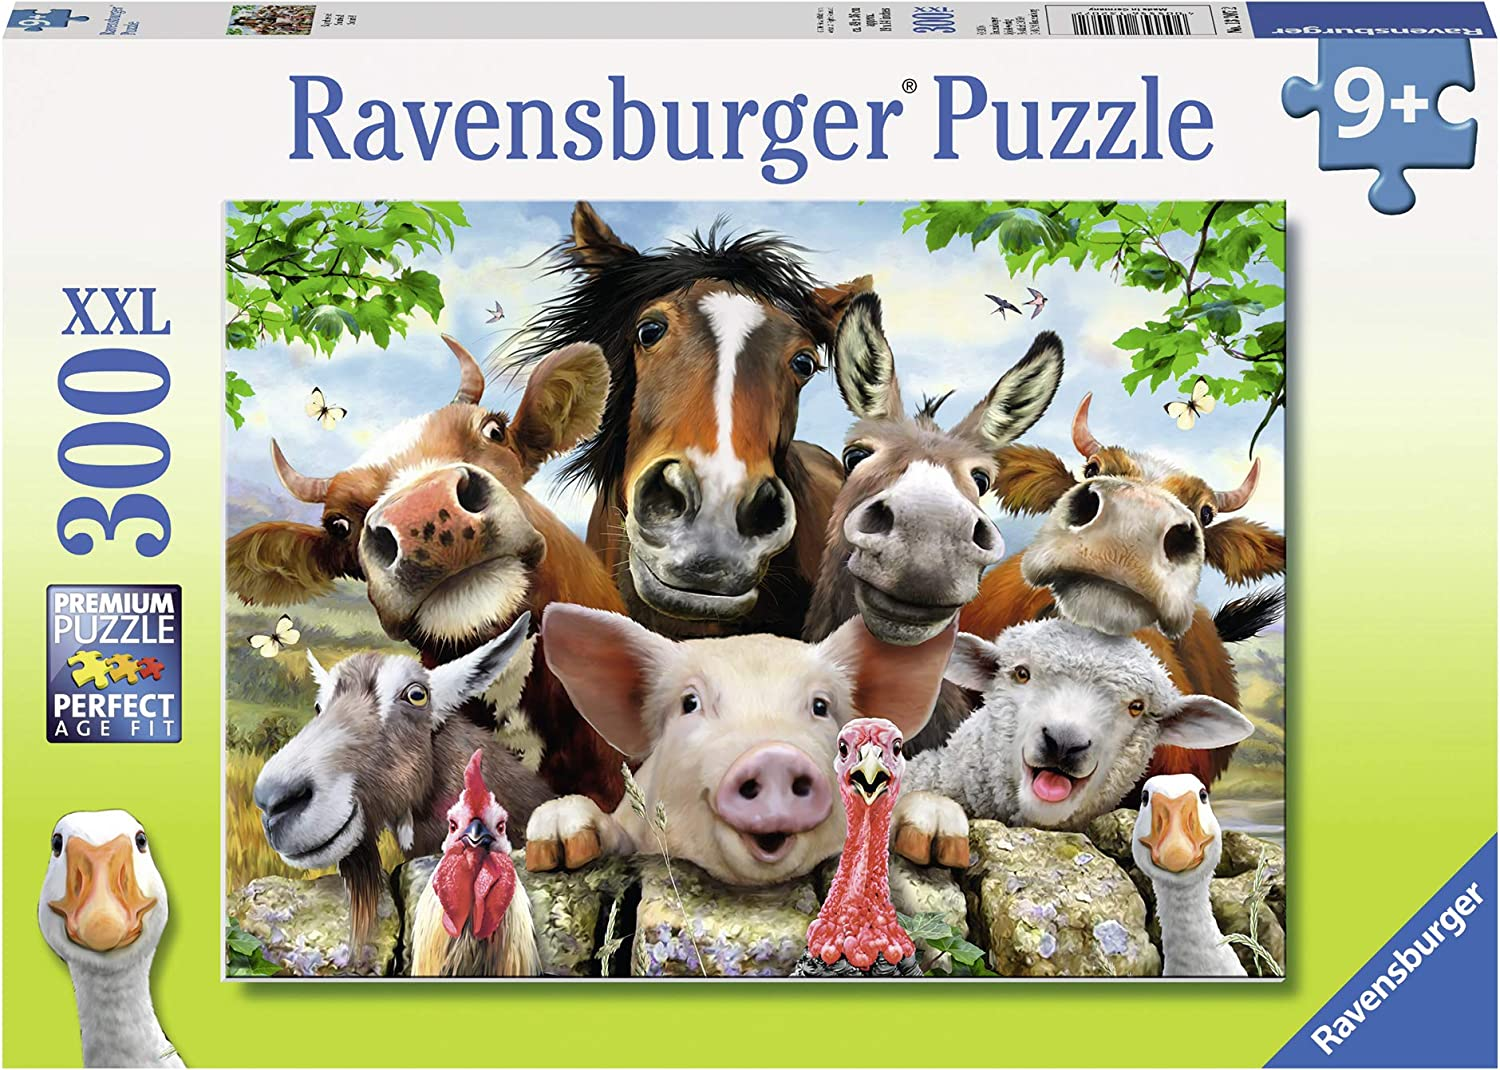 Ravensburger Say Cheese! Jigsaw 100 Piece Jigsaw Puzzle for Kids – Every Piece is Unique, Pieces Fit Together Perfectly